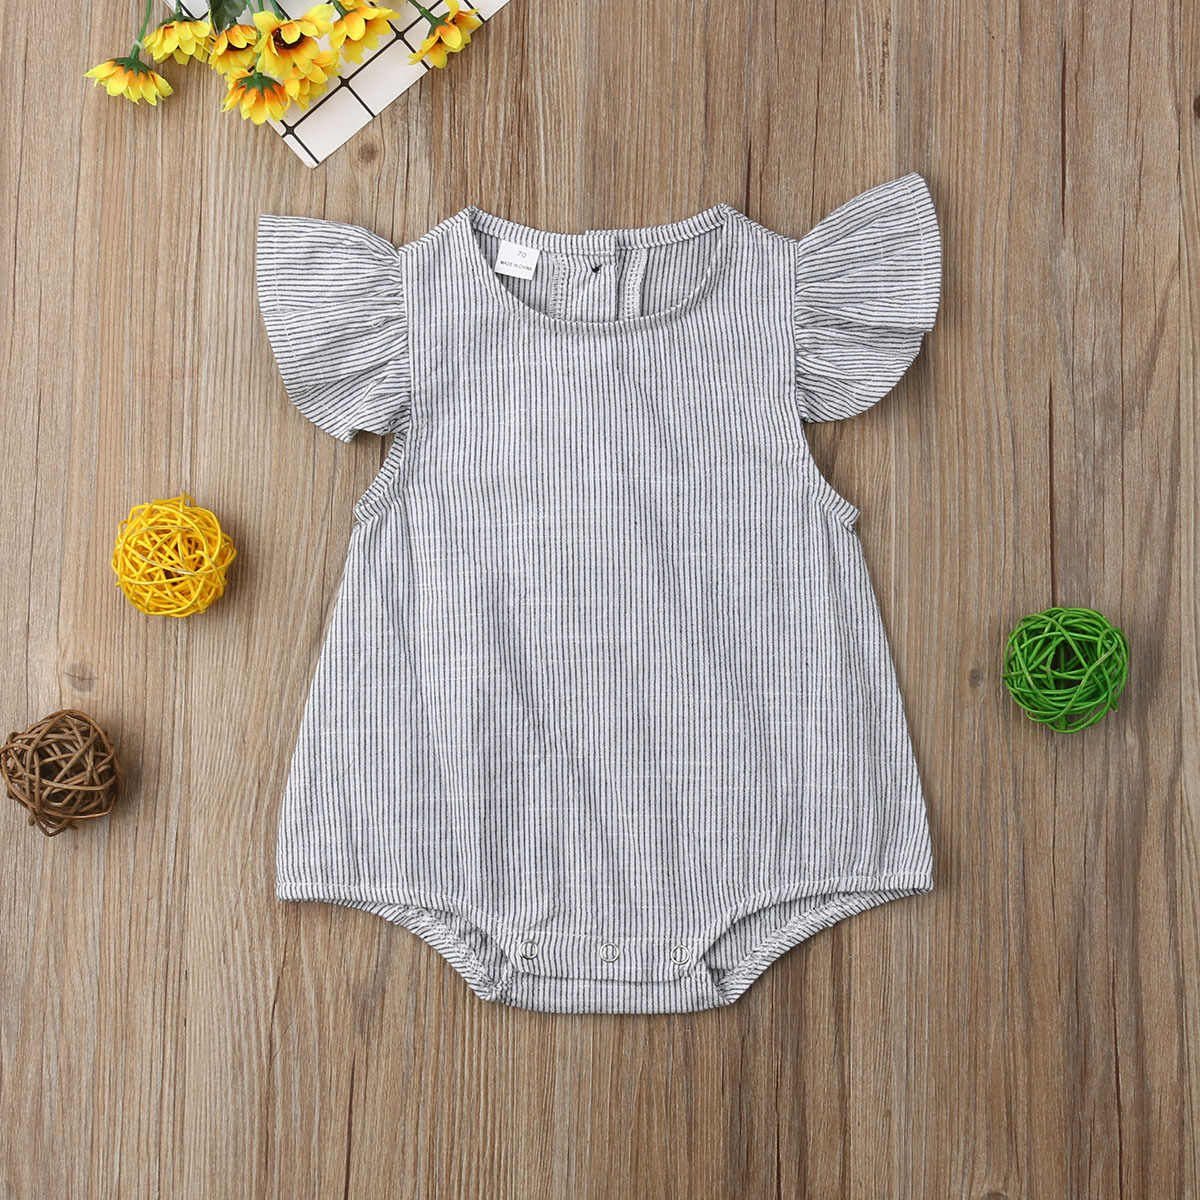 Newborn Infant Romper Toddler Baby Girl Boy Clothes Ruffle Jumpsuit Sleeveless Striped Outfits Summer Sunsuit 0-18M